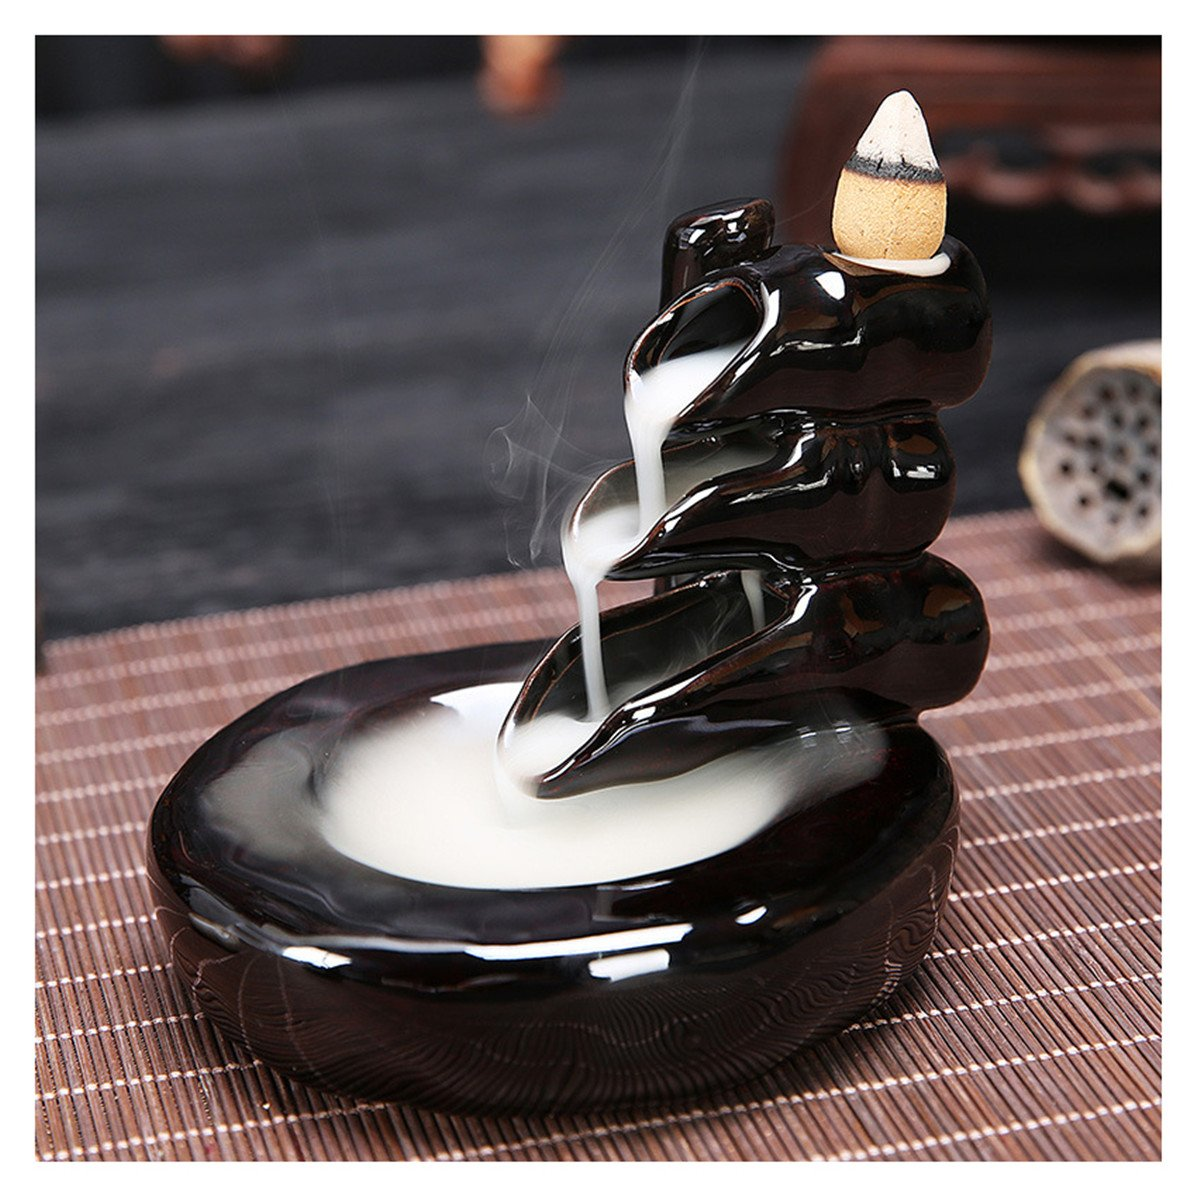 ECYC Ceramic Glaze Incense Burner Bracket Indoor Holder Backflow Smoke Waterfall Censer Tower Collectible